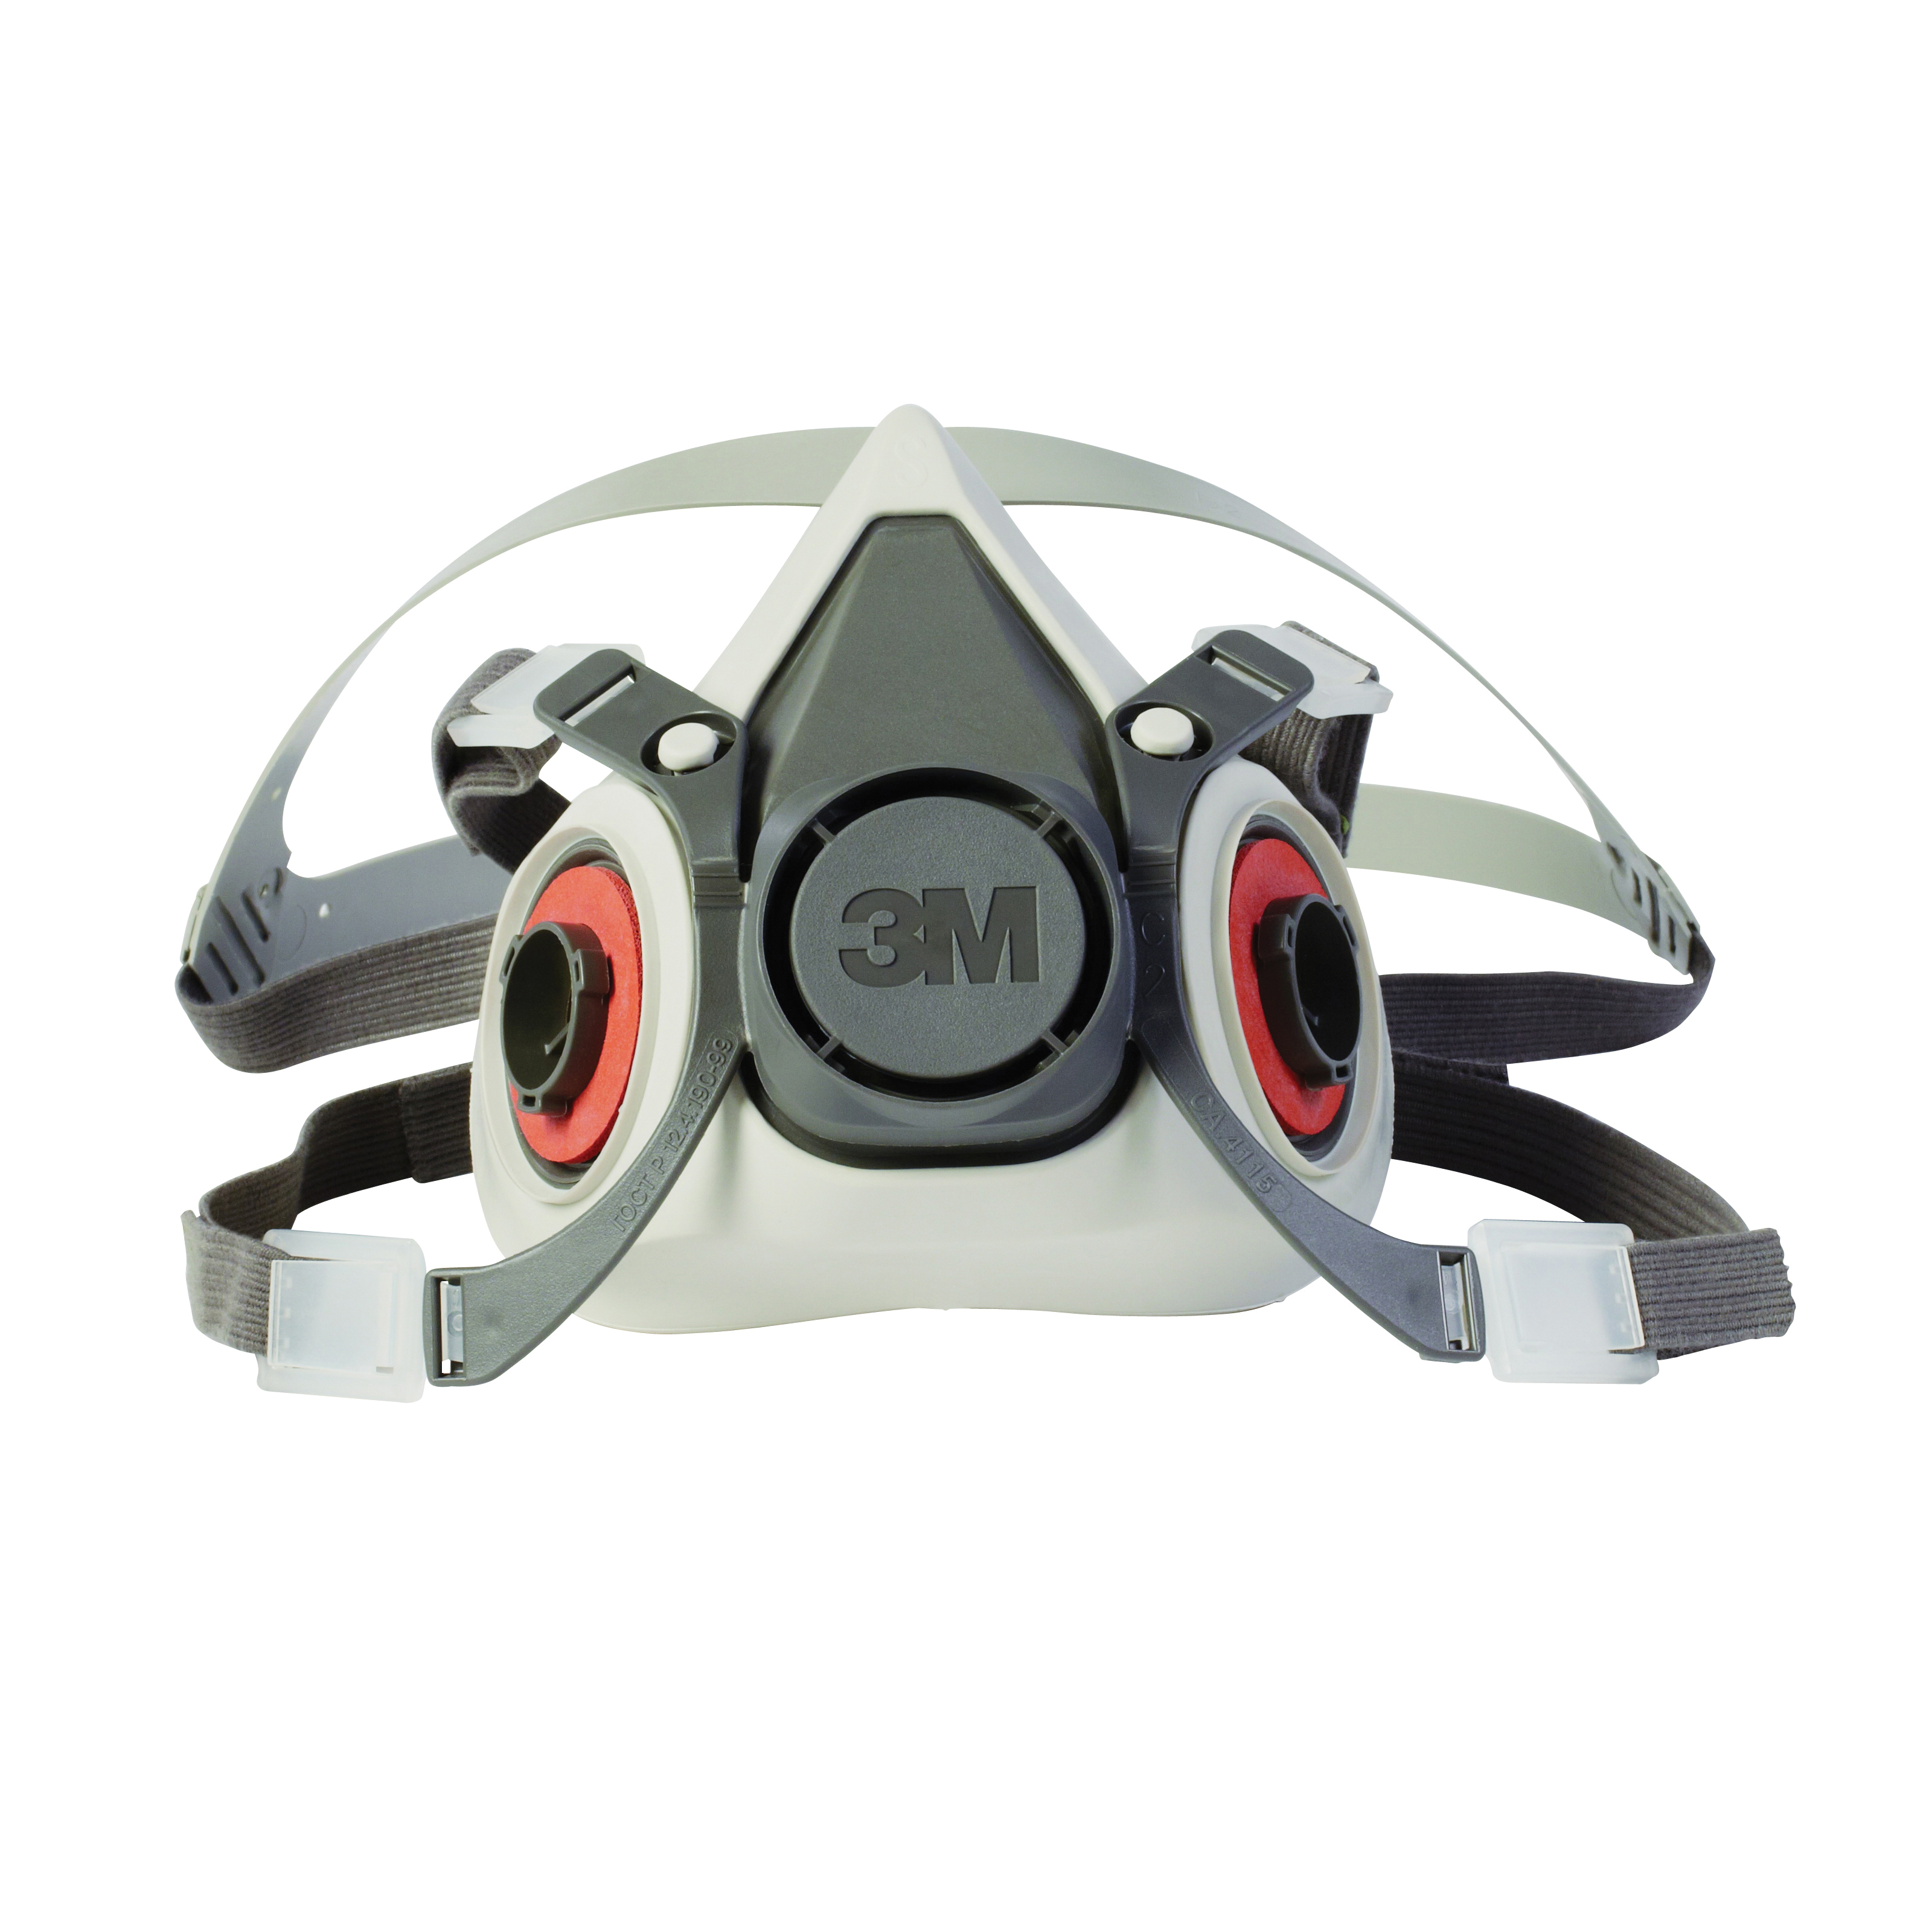 3M™ 051131-07024 Dual Cartridge Reusable Half Facepiece Respirator, S, 4-Point Yolk/Cradle Suspension, Bayonet Connection, Resists: Particulates, Gases and Vapors